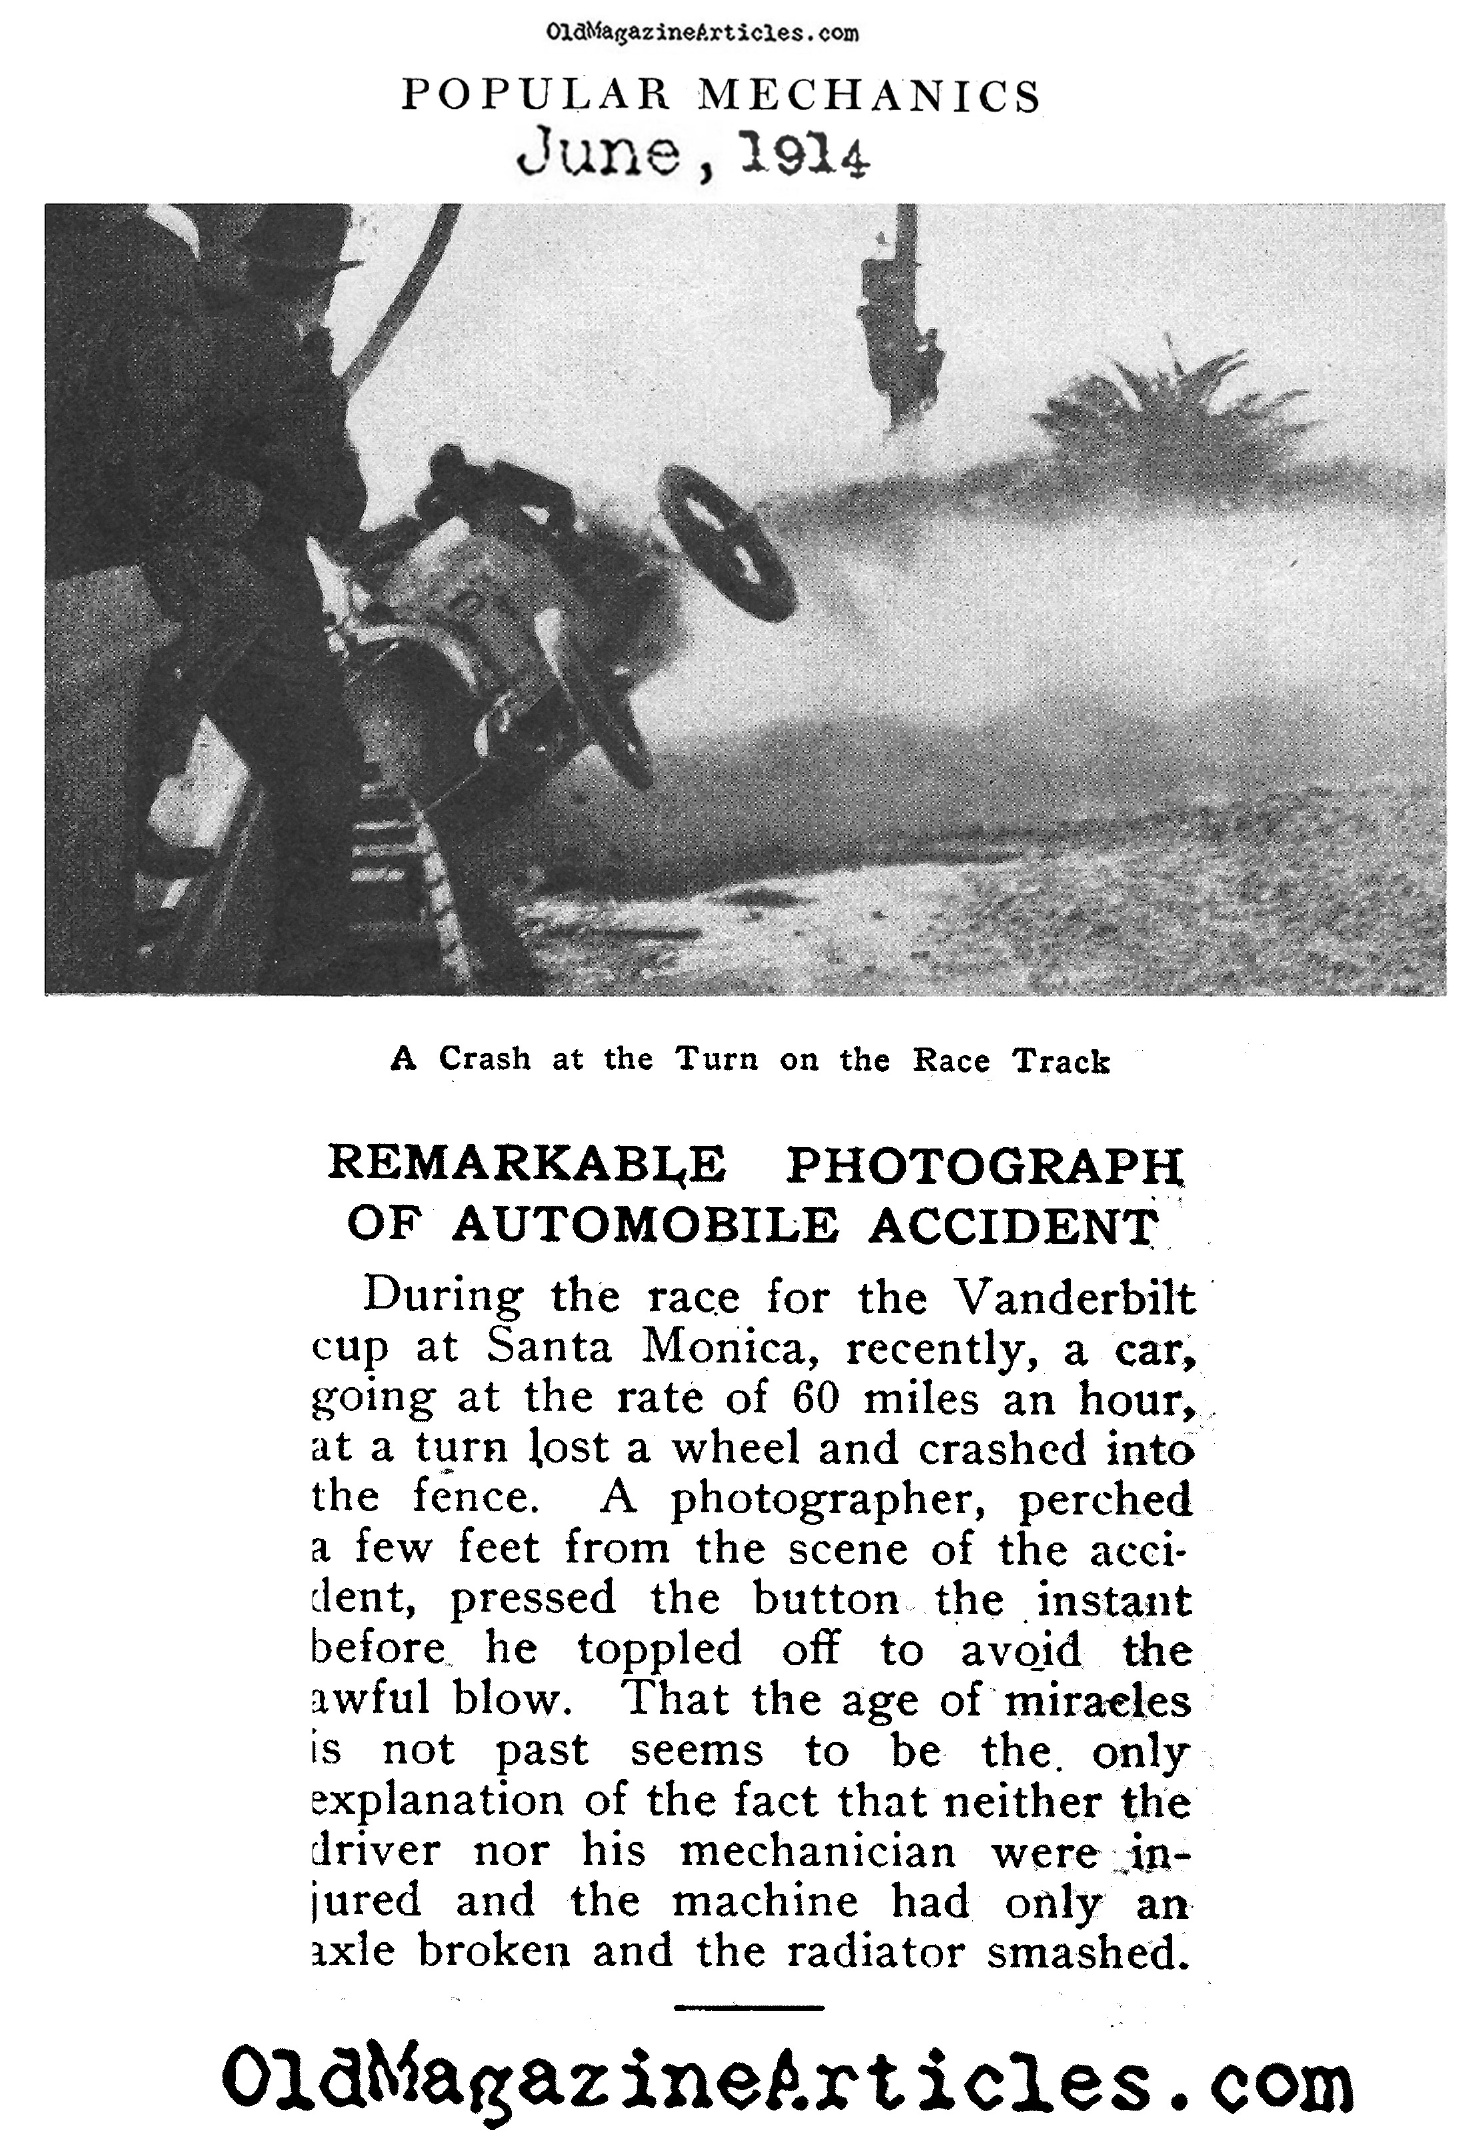 Earliest Car Crash Photograph  (Popular Mechanics, 1914)